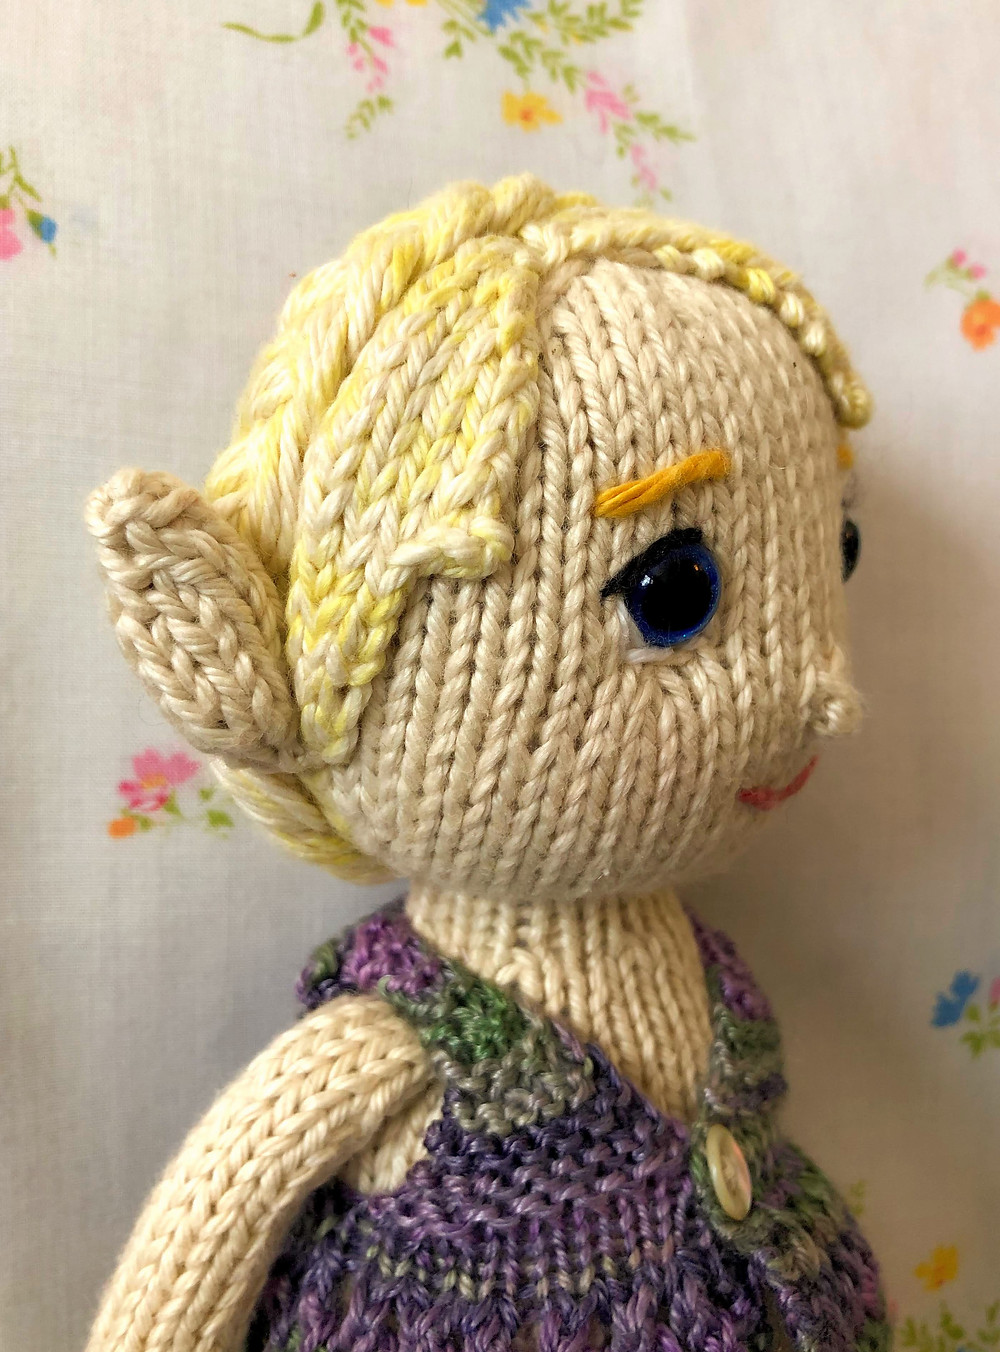 Side view of blond mermaid doll showing double-layer ear style.